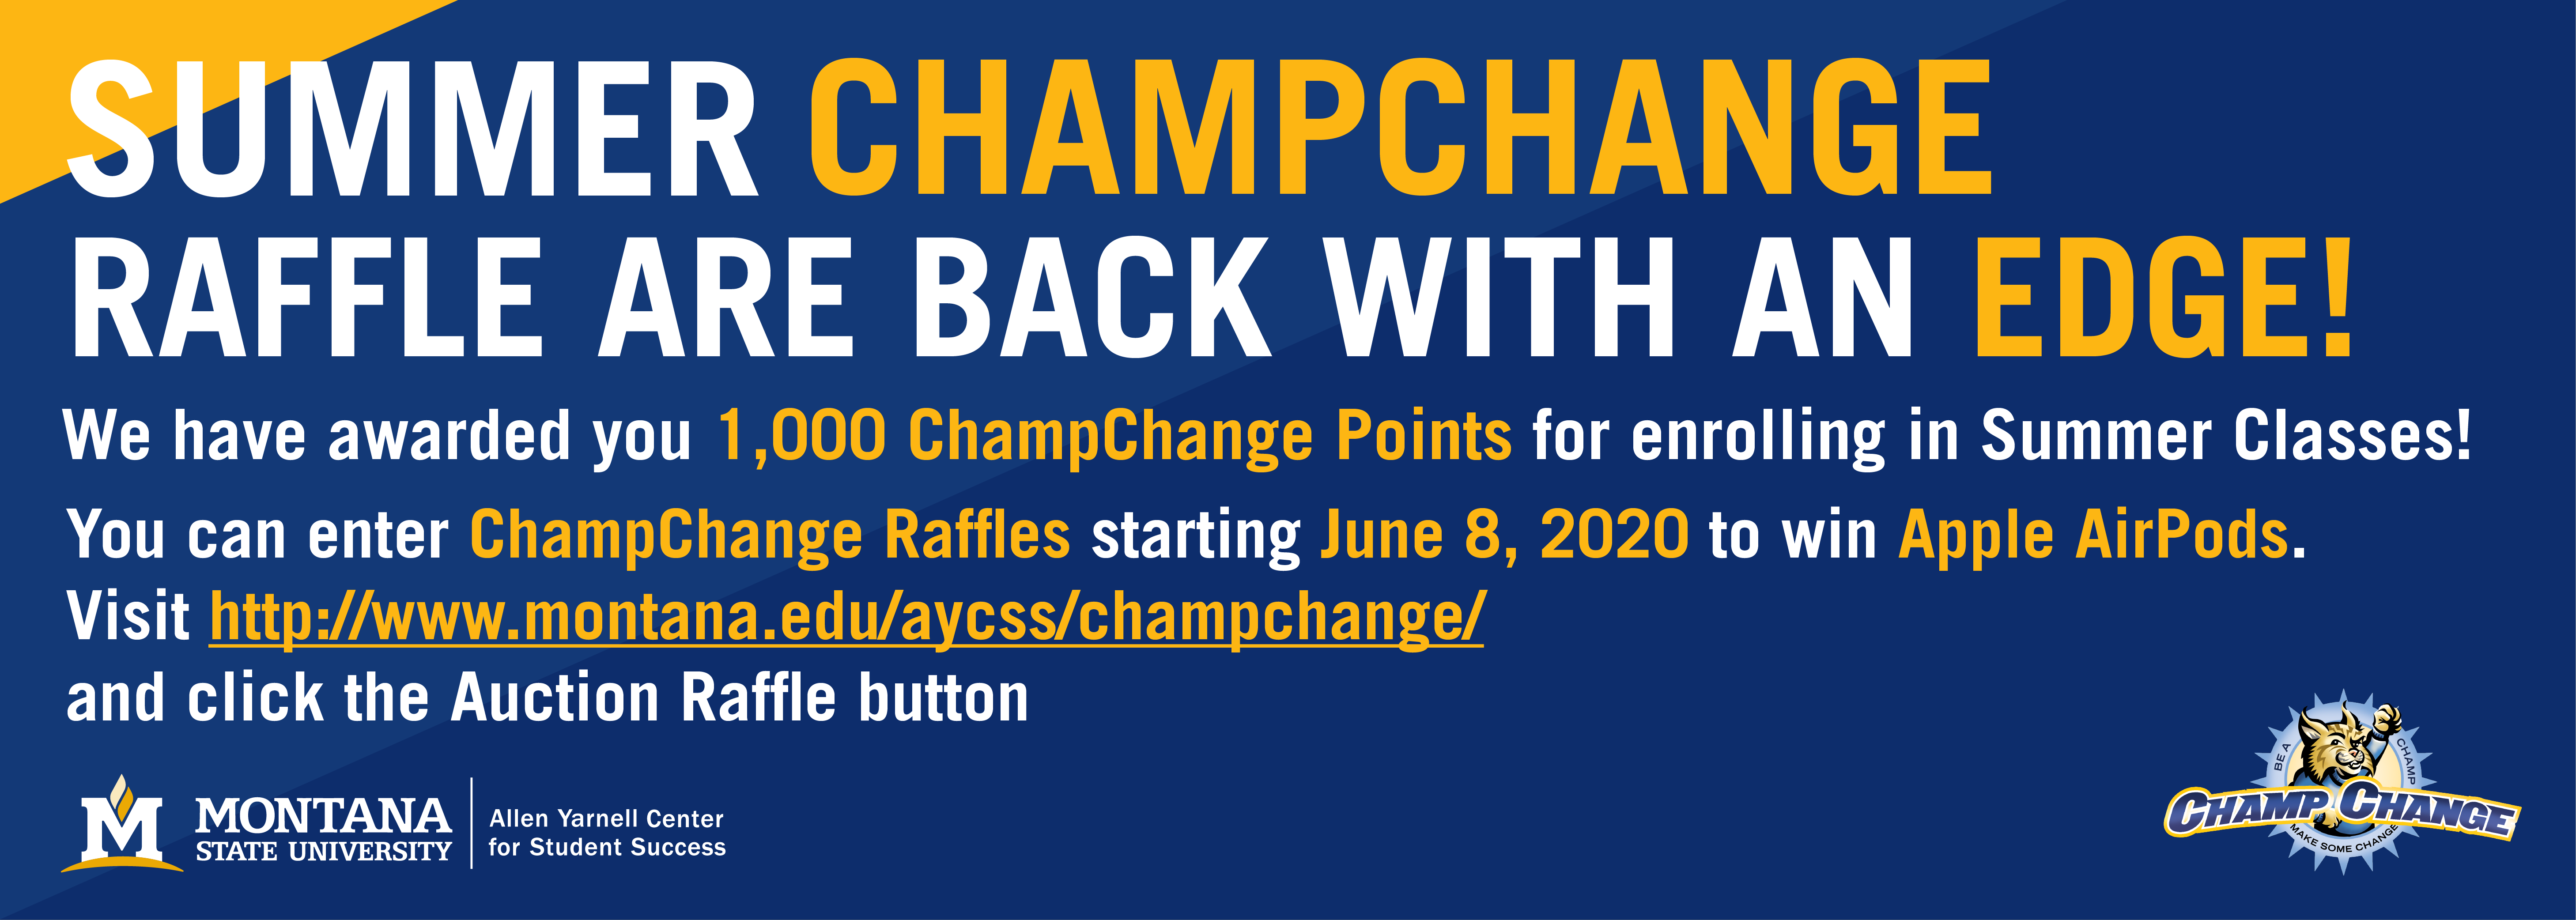 SUMMER CHAMPCHANGE RAFFLES ARE BACK WITH AN EDGE!  We have awarded you 1,000 ChampChange Points for enrolling in Summer Classes! You are Welcome!  You can enter ChampChange Raffles starting June 8, 2020 to win Apple AirPods. Visit http://www.montana.edu/aycss/champchange/ and click the Auction Raffle button